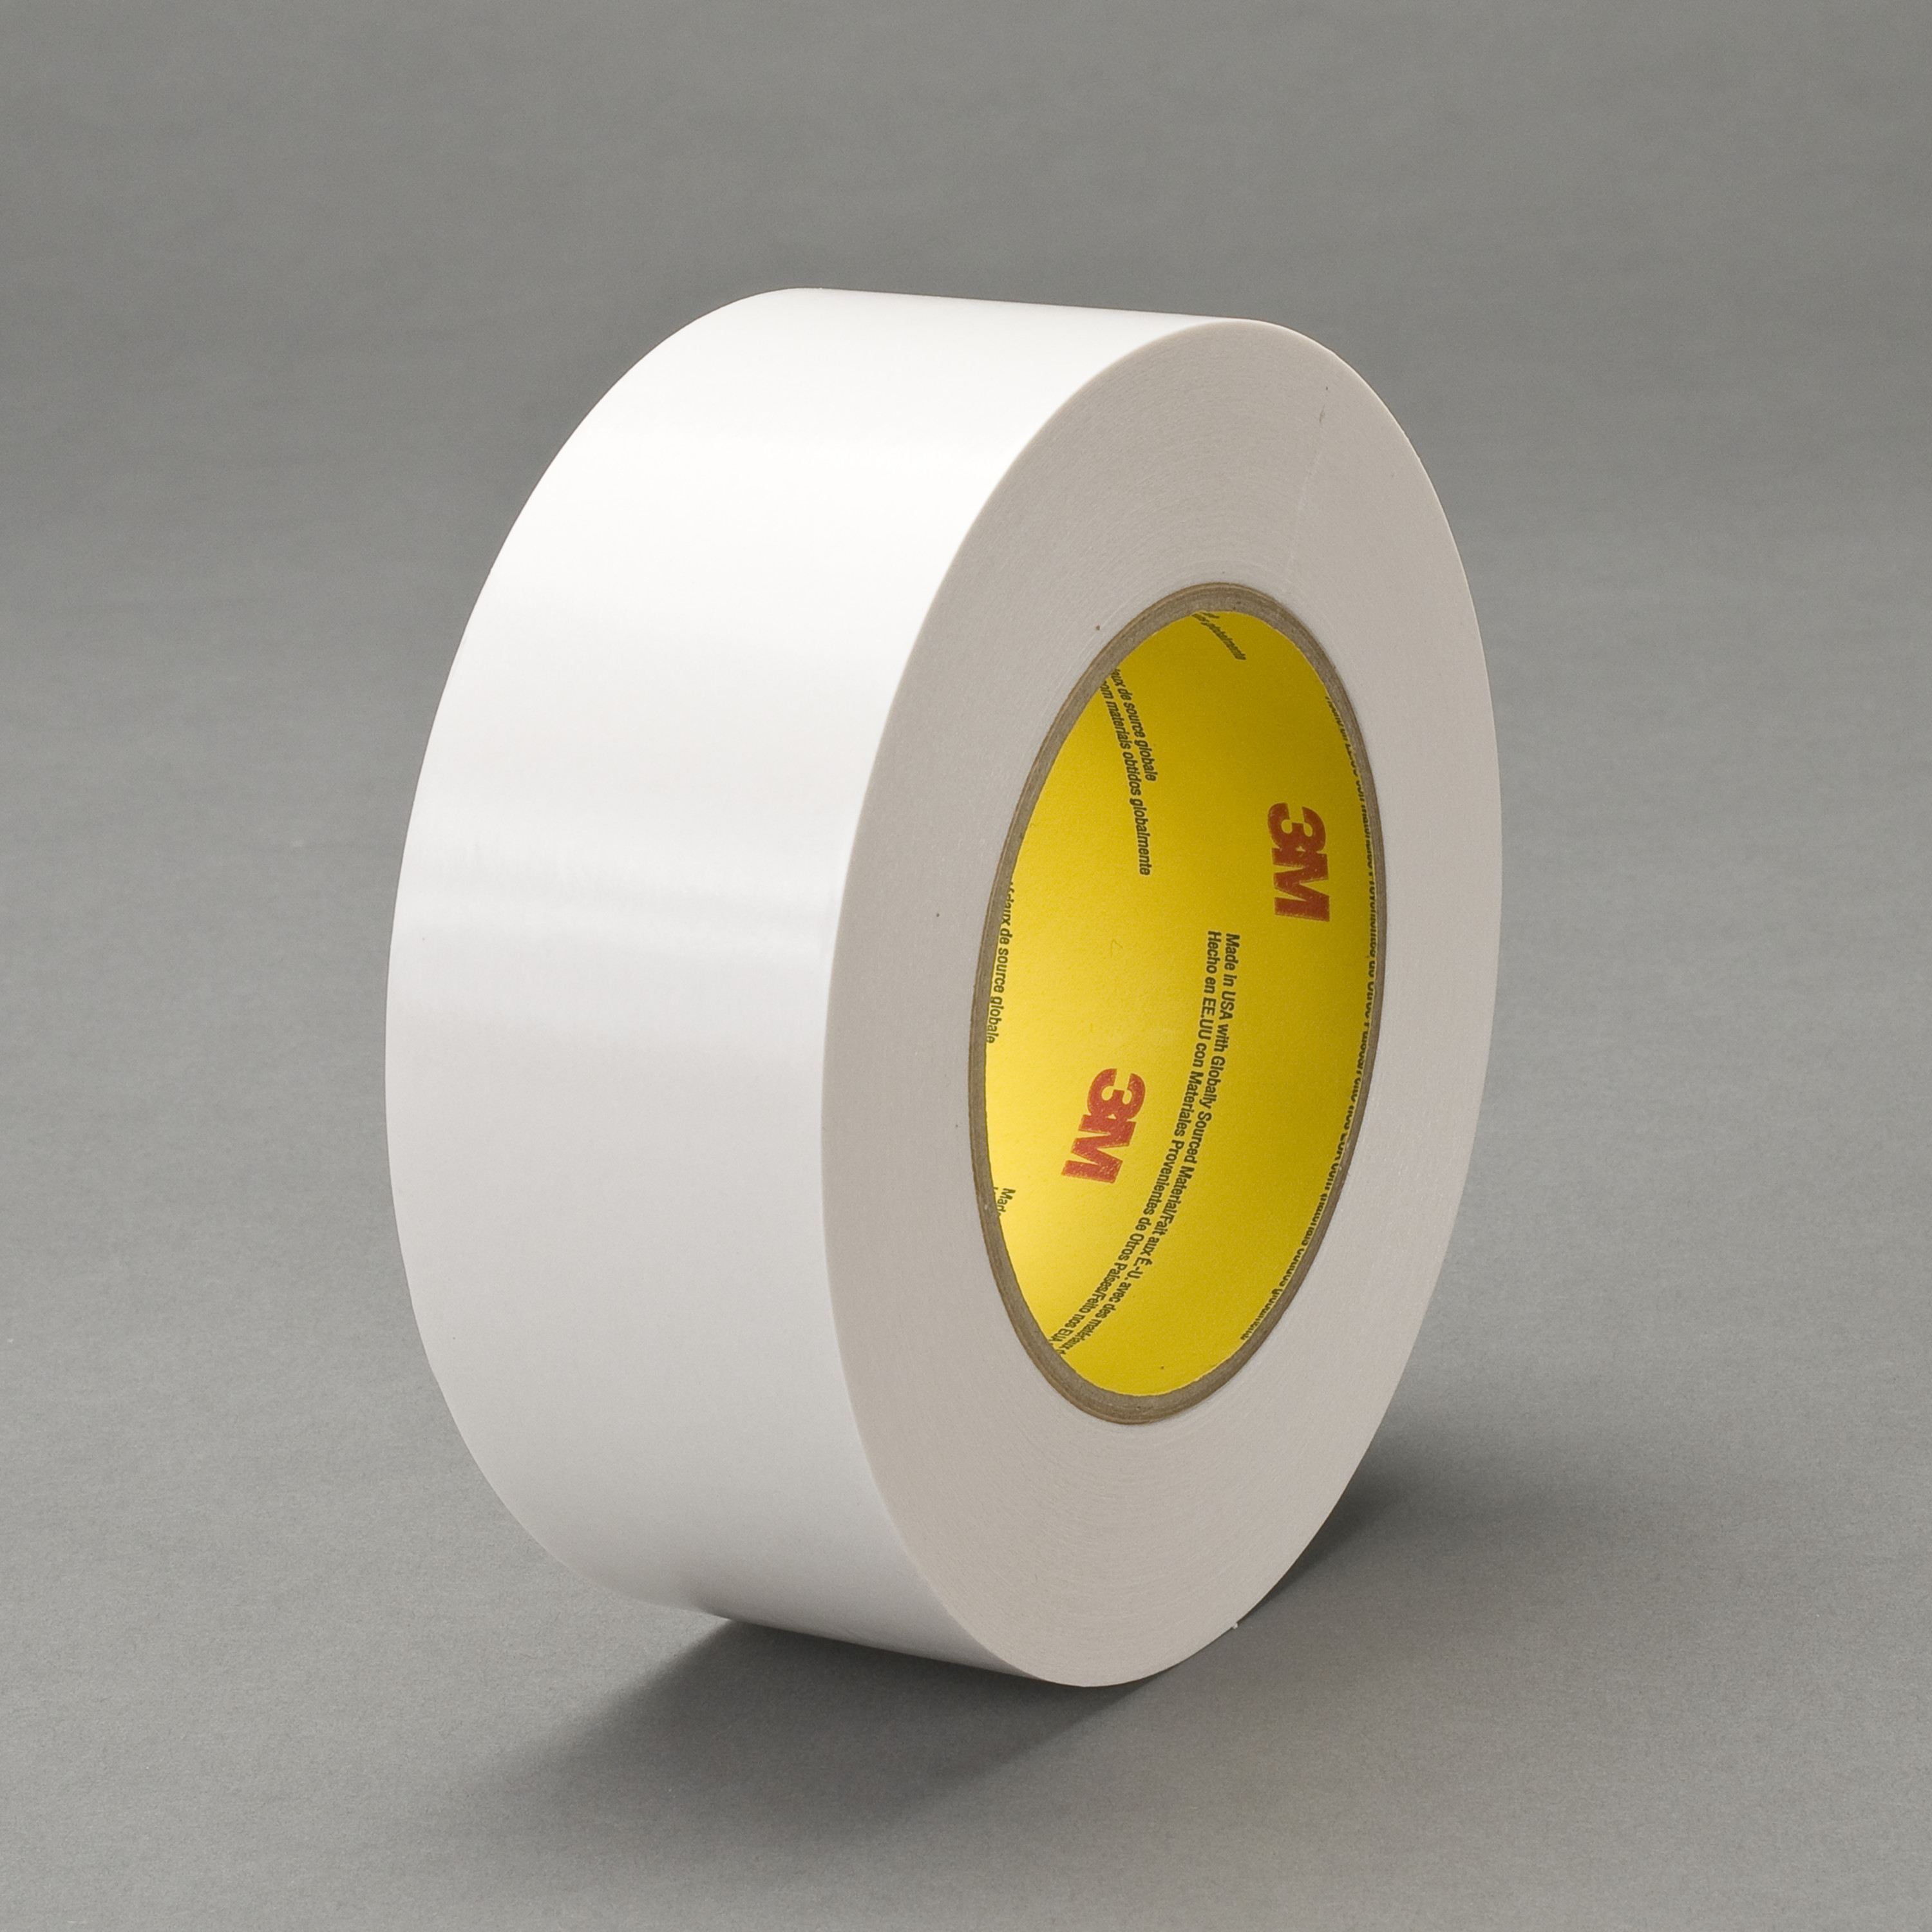 3M™ Double Coated Tape 9738, Clear, 36 mm x 55 m, 4.3 mil, 32 rolls per case